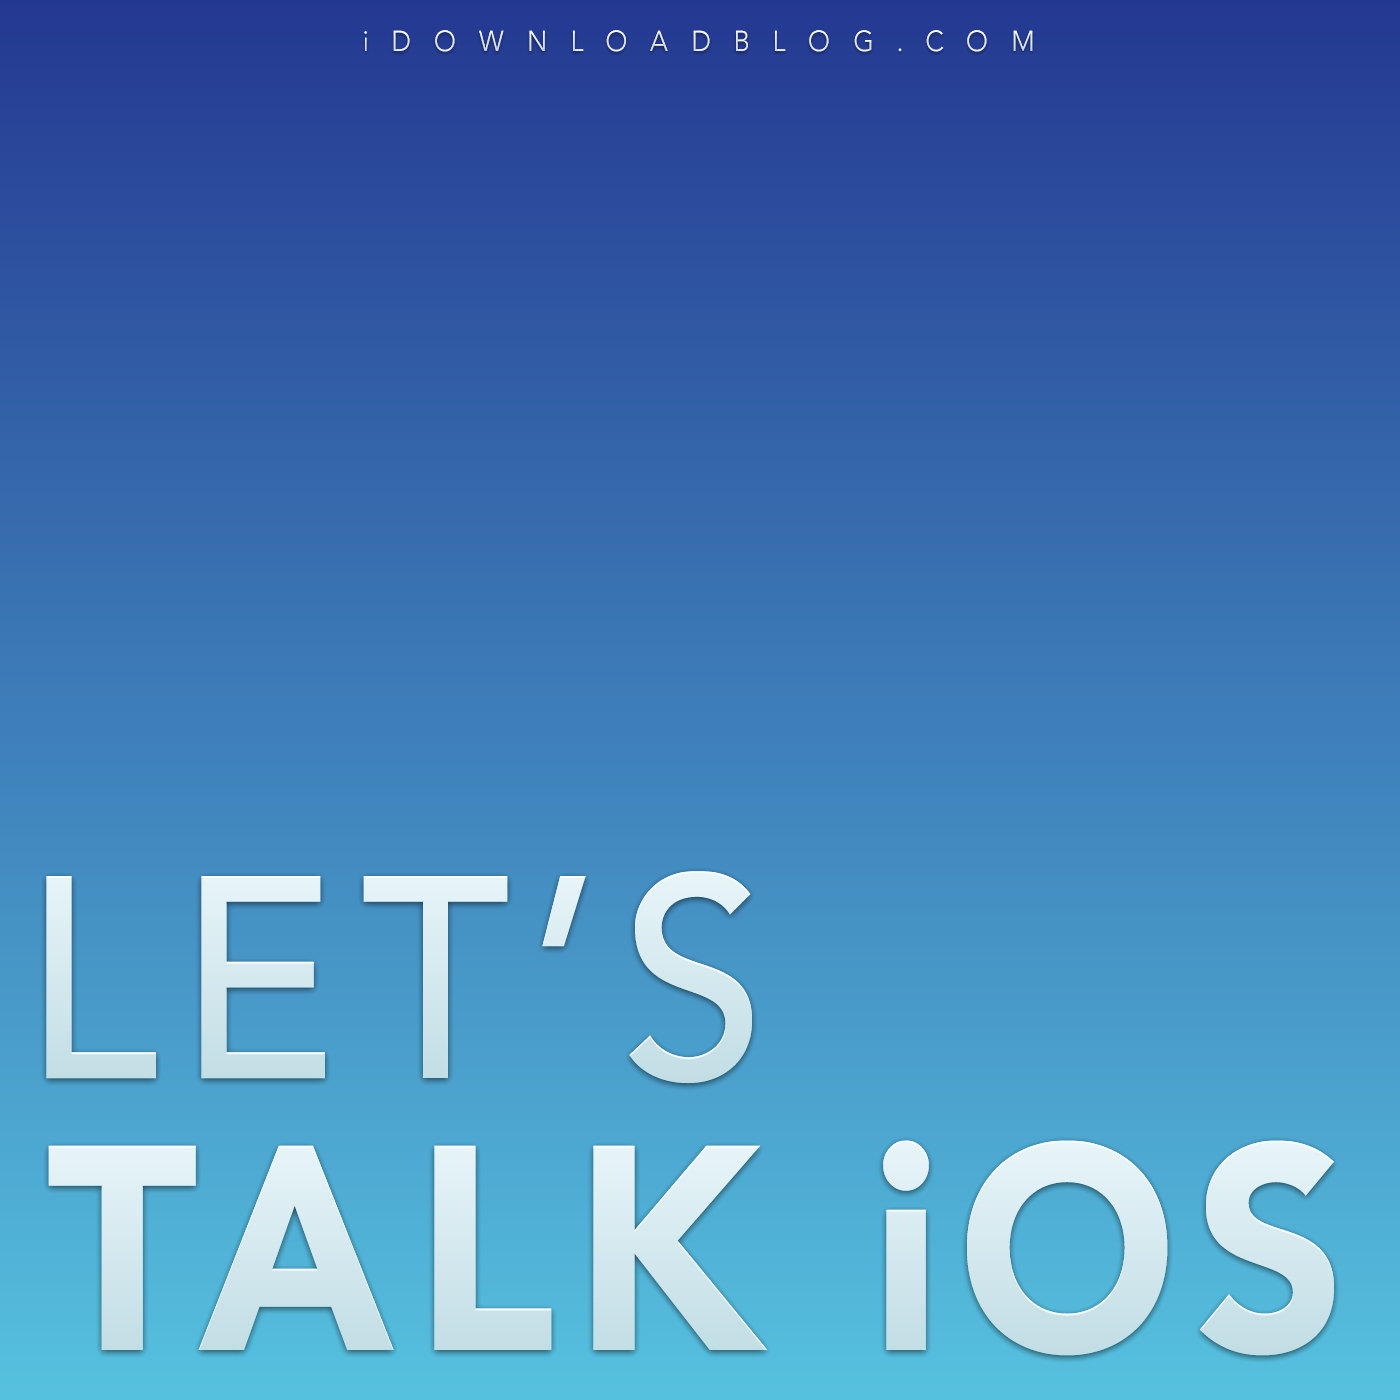 Let's Talk iOS podcast cover (no matrix effect)